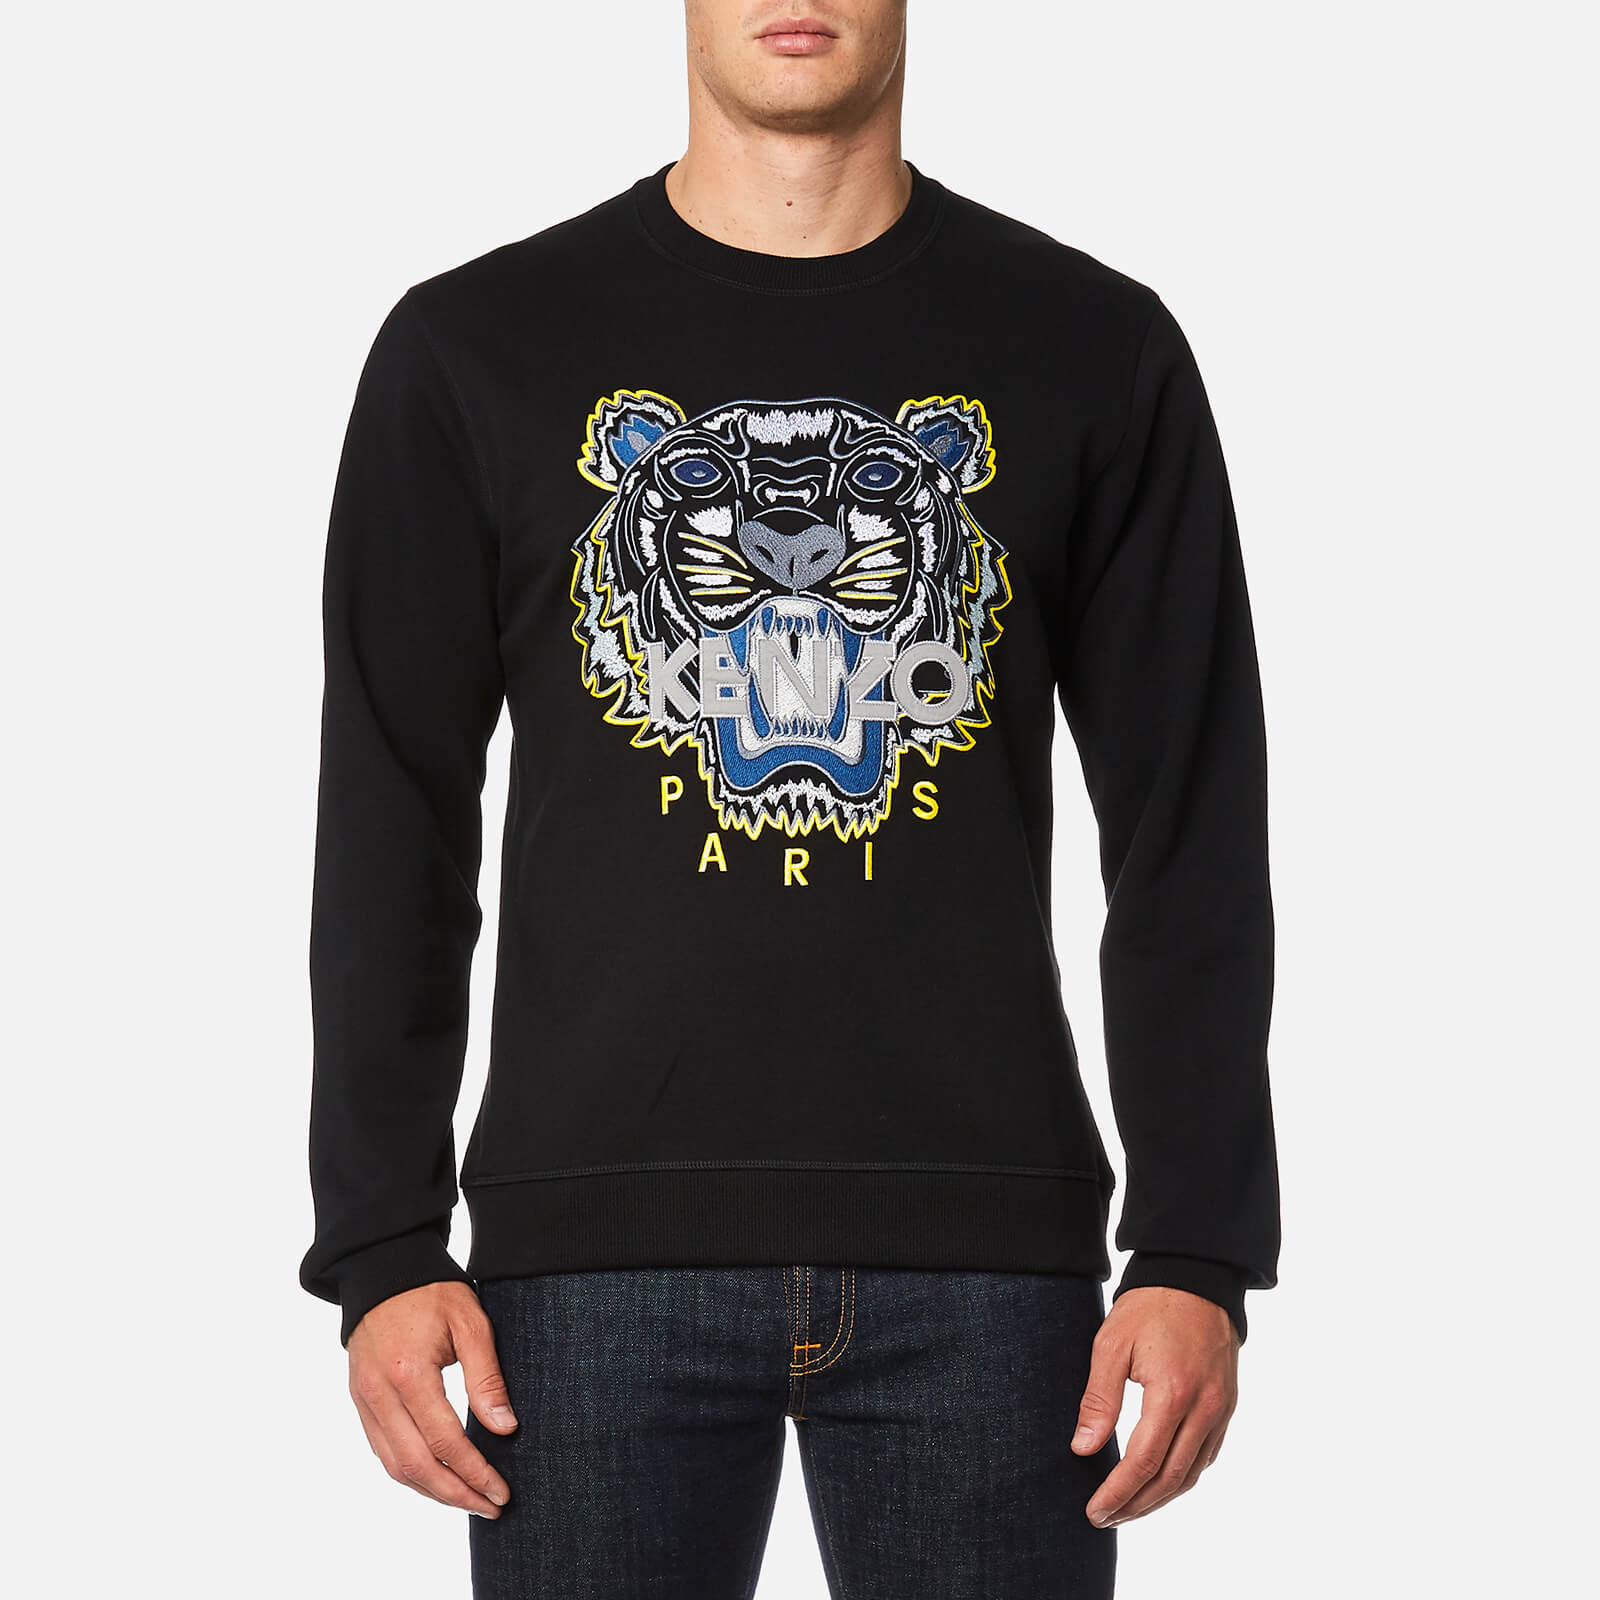 6eacc7a1 KENZO Men's Classic Icon Sweatshirt - Black - Free UK Delivery over £50